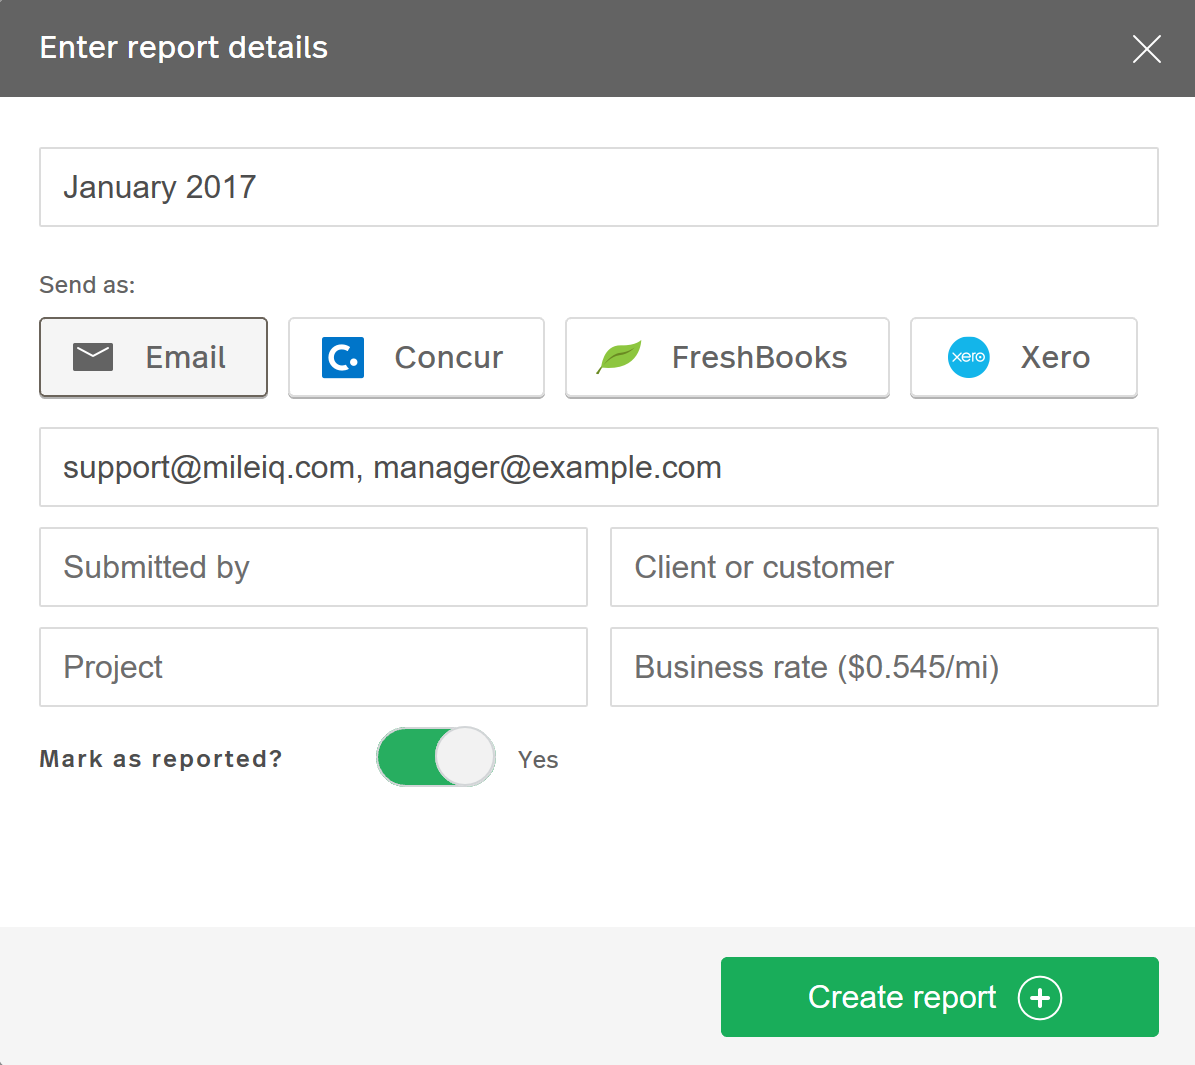 Screenshot showing the 'Enter report details' dialog box that appears when you create a report in the MileIQ Web Dashboard.